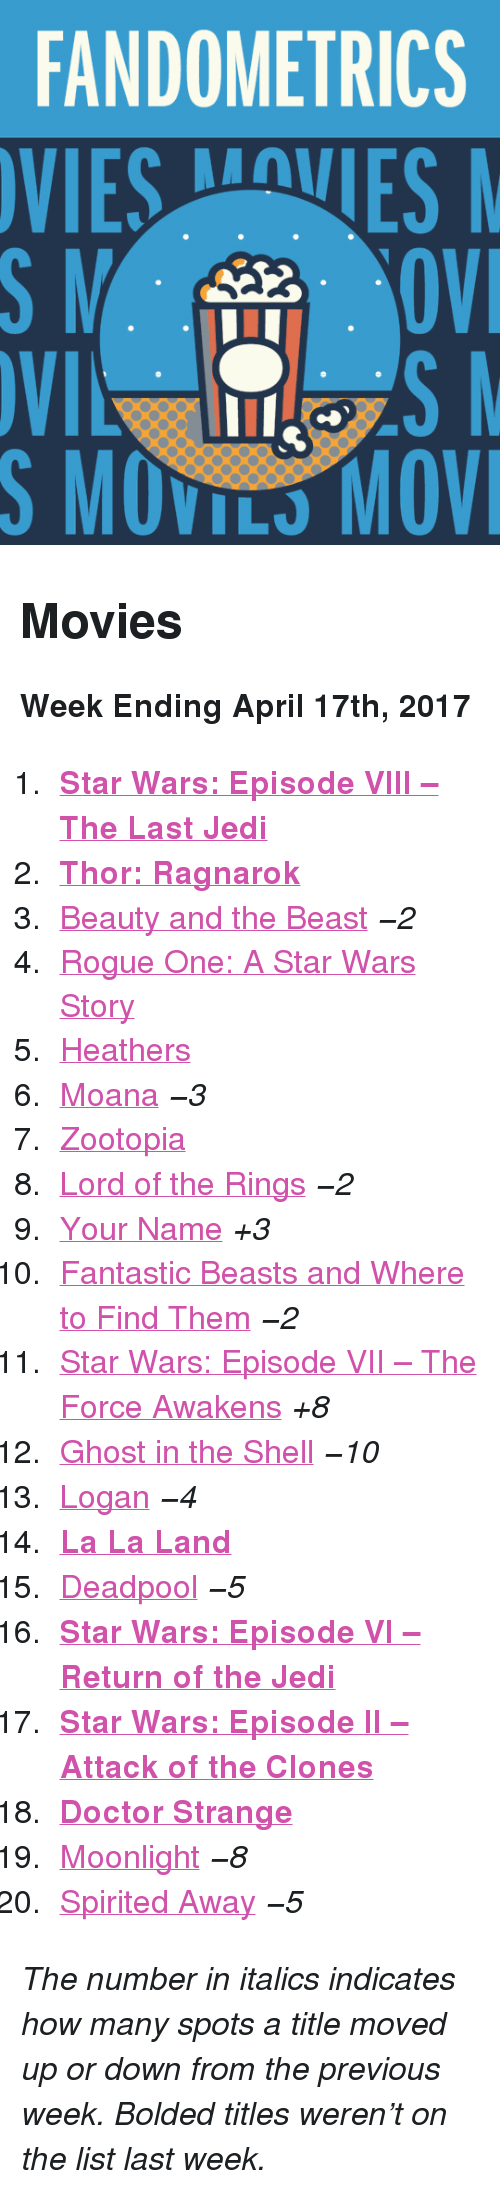 """Doctor, Jedi, and Movies: FANDOMETRICS  VIESVES  S MOVILS MOV <h2>Movies</h2><p><b>Week Ending April 17th, 2017</b></p><ol><li><a href=""""http://www.tumblr.com/search/the%20last%20jedi""""><b>Star Wars: Episode VIII – The Last Jedi</b></a></li>  <li><a href=""""http://www.tumblr.com/search/thor%20ragnarok""""><b>Thor: Ragnarok</b></a></li>  <li><a href=""""http://www.tumblr.com/search/beauty%20and%20the%20beast"""">Beauty and the Beast</a><i>−2</i></li>  <li><a href=""""http://www.tumblr.com/search/rogue%20one"""">Rogue One: A Star Wars Story</a></li>  <li><a href=""""http://www.tumblr.com/search/heathers"""">Heathers</a></li>  <li><a href=""""http://www.tumblr.com/search/moana"""">Moana</a><i>−3</i></li>  <li><a href=""""http://www.tumblr.com/search/zootopia"""">Zootopia</a></li>  <li><a href=""""http://www.tumblr.com/search/lotr"""">Lord of the Rings</a><i>−2</i></li>  <li><a href=""""http://www.tumblr.com/search/your%20name"""">Your Name</a><i>+3</i></li>  <li><a href=""""http://www.tumblr.com/search/fantastic%20beasts%20and%20where%20to%20find%20them"""">Fantastic Beasts and Where to Find Them</a><i>−2</i></li>  <li><a href=""""http://www.tumblr.com/search/the%20force%20awakens"""">Star Wars: Episode VII – The Force Awakens</a><i>+8</i></li>  <li><a href=""""http://www.tumblr.com/search/ghost%20in%20the%20shell"""">Ghost in the Shell</a><i>−10</i></li>  <li><a href=""""http://www.tumblr.com/search/logan"""">Logan</a><i>−4</i></li>  <li><a href=""""http://www.tumblr.com/search/la%20la%20land""""><b>La La Land</b></a></li>  <li><a href=""""http://www.tumblr.com/search/deadpool"""">Deadpool</a><i>−5</i></li>  <li><a href=""""http://www.tumblr.com/search/return%20of%20the%20jedi""""><b>Star Wars: Episode VI – Return of the Jedi</b></a></li>  <li><a href=""""http://www.tumblr.com/search/attack%20of%20the%20clones""""><b>Star Wars: Episode II – Attack of the Clones</b></a></li>  <li><a href=""""http://www.tumblr.com/search/doctor%20strange""""><b>Doctor Strange</b></a></li>  <li><a href=""""http://www.tumblr.com/search/moonlight"""">Moonlight</a><i>−8</i></li>  <li><a href=""""http"""